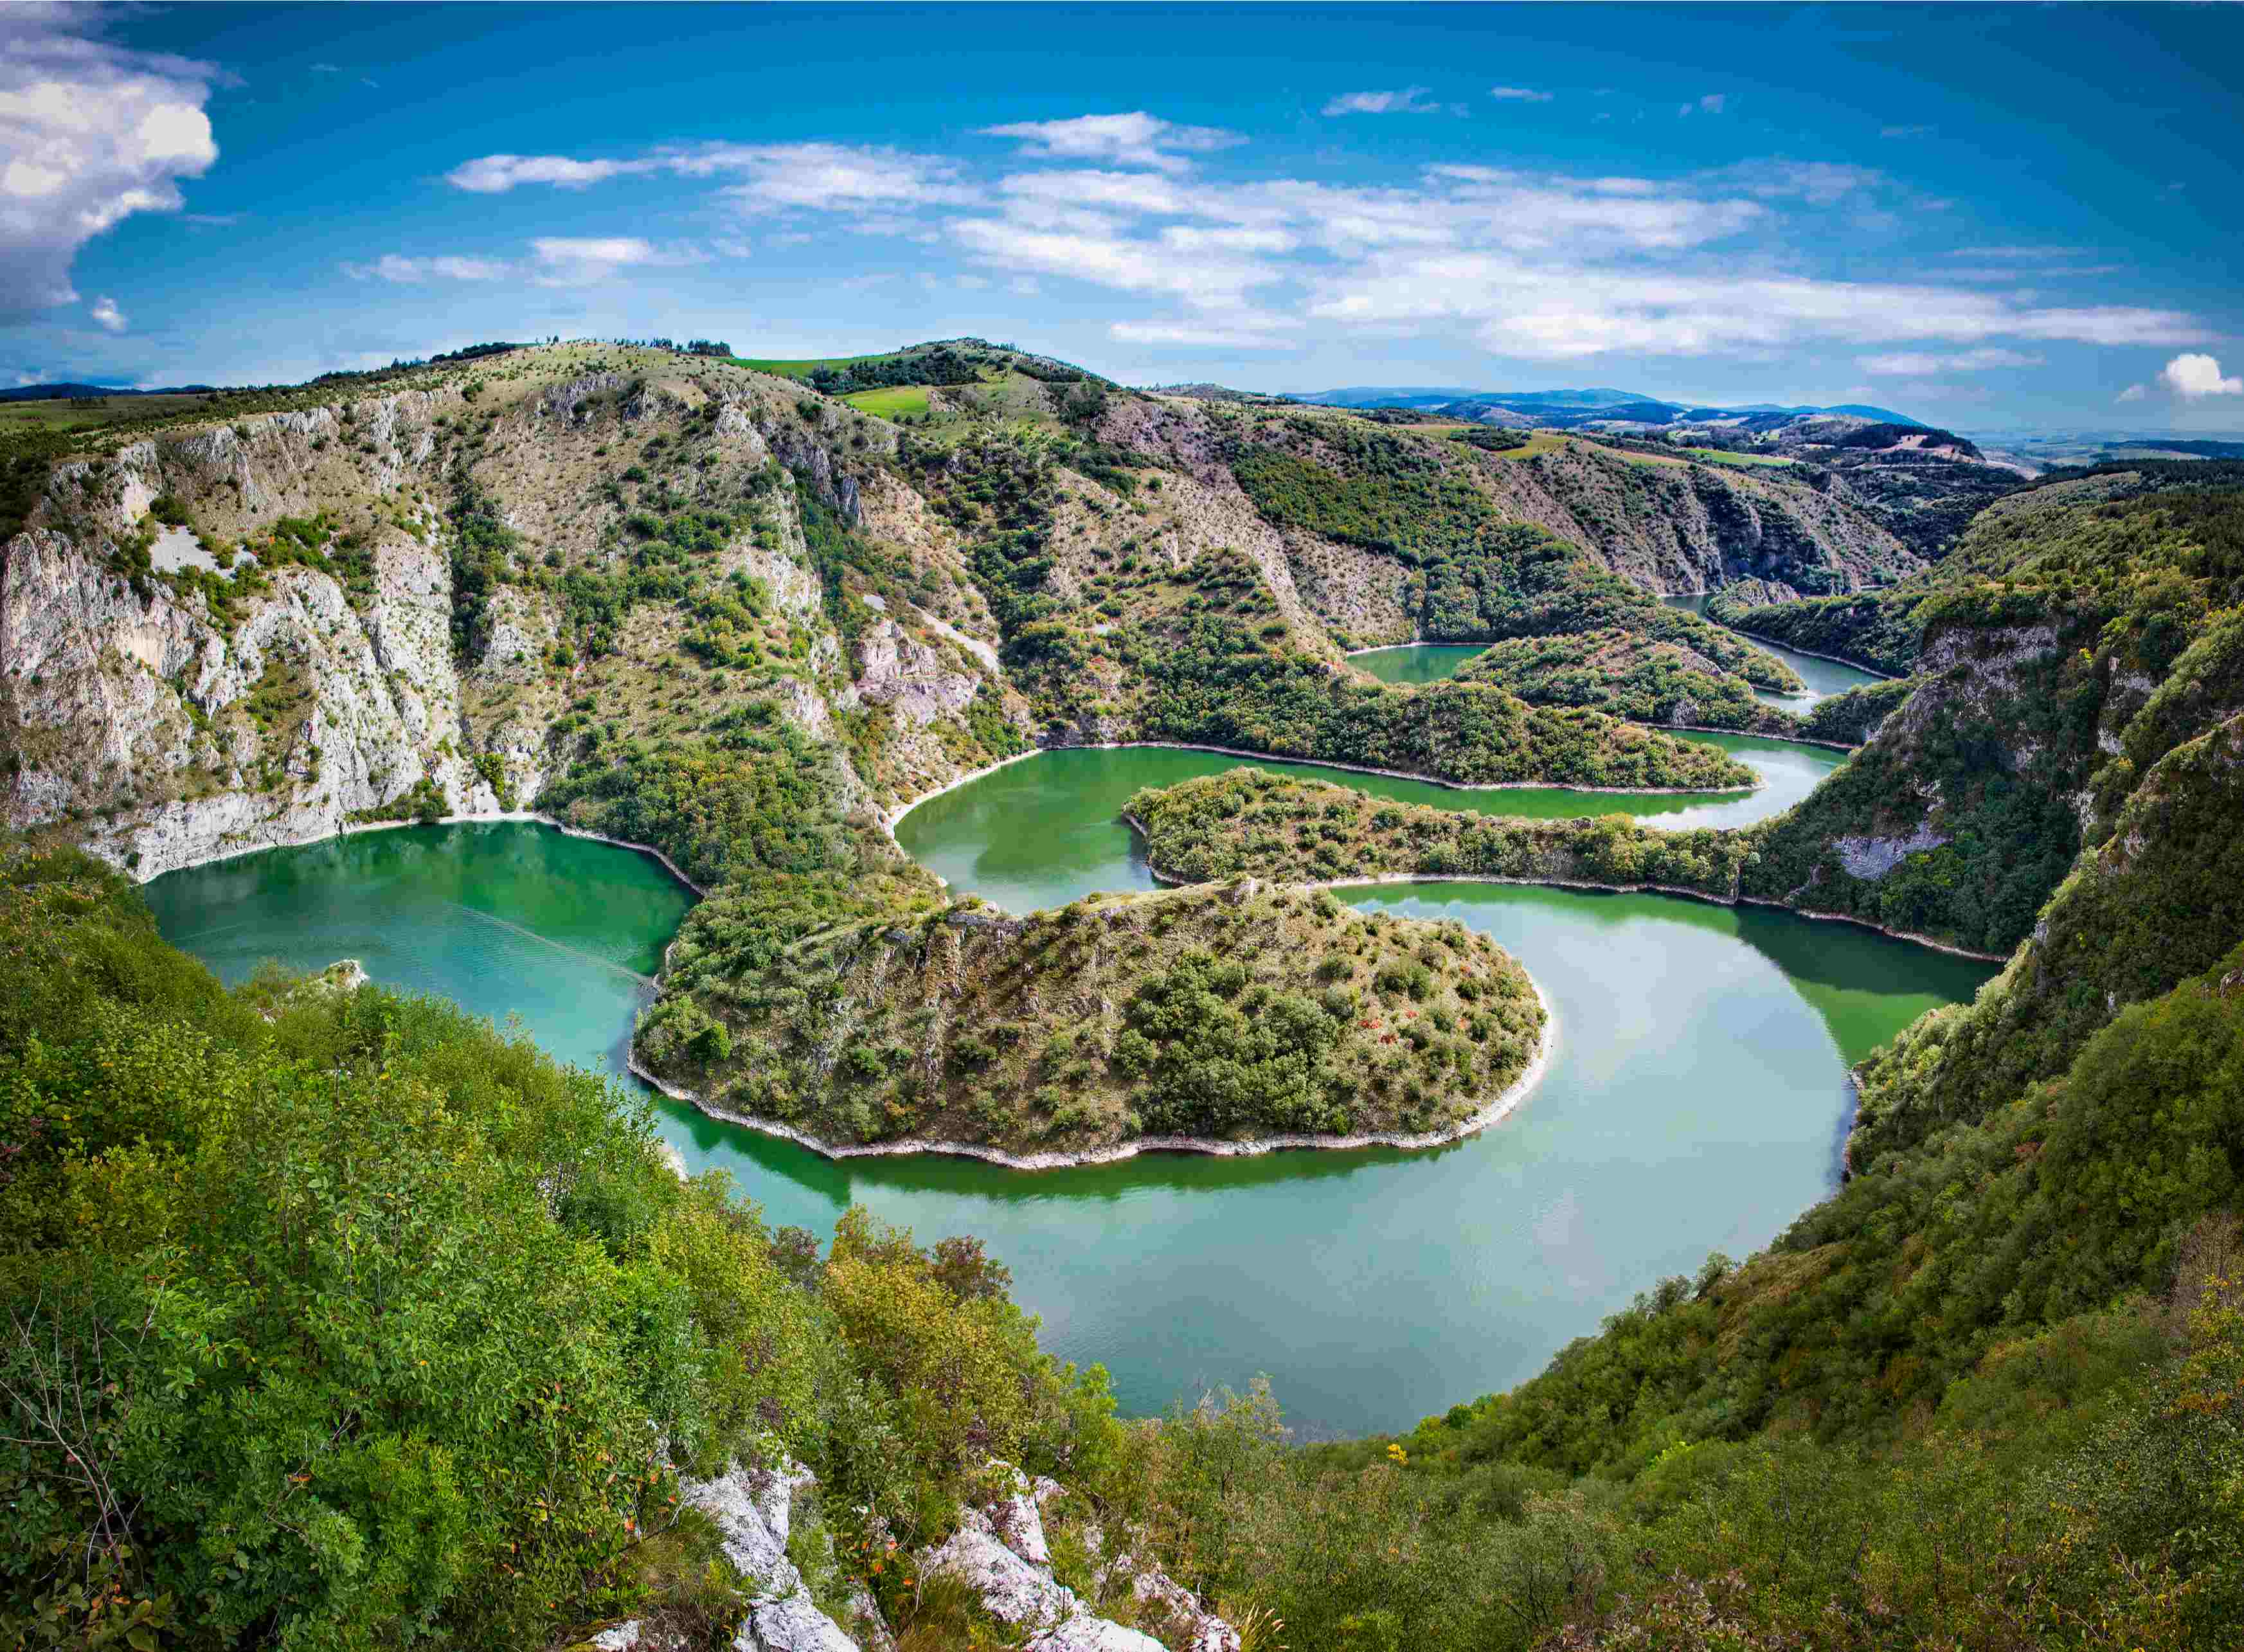 View of Uvac Canyon travelling to Serbia